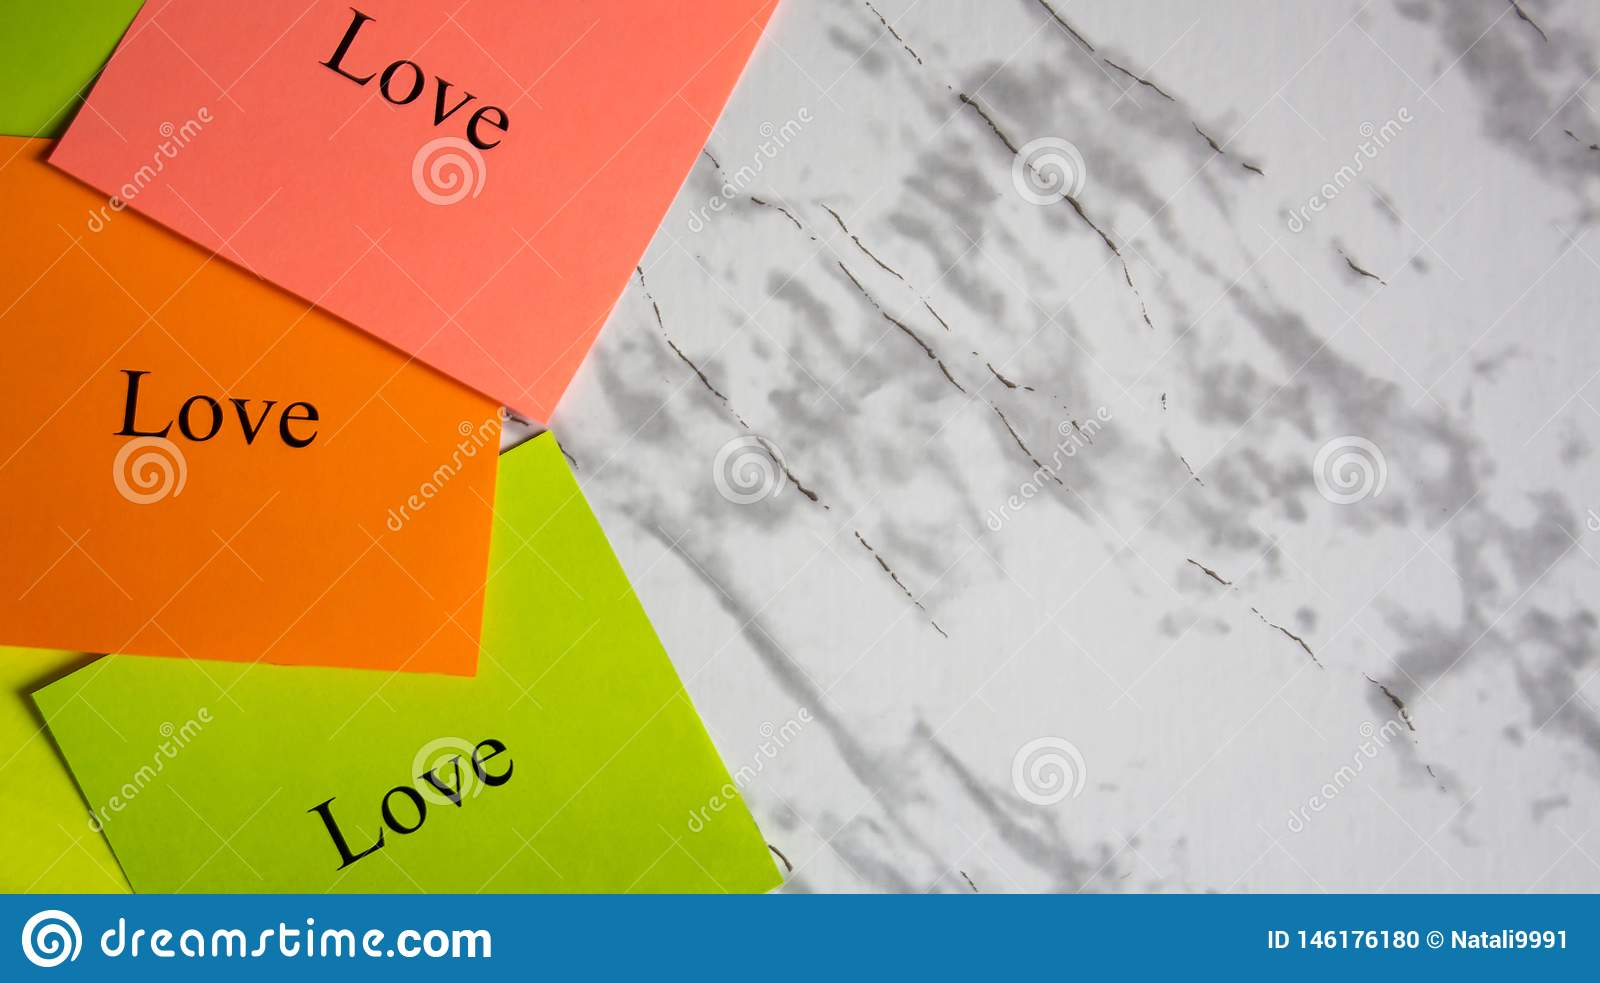 Copy space, creativity, project, art. Vision board. Motivational words on colorful stickers on a marble table. Business plan,